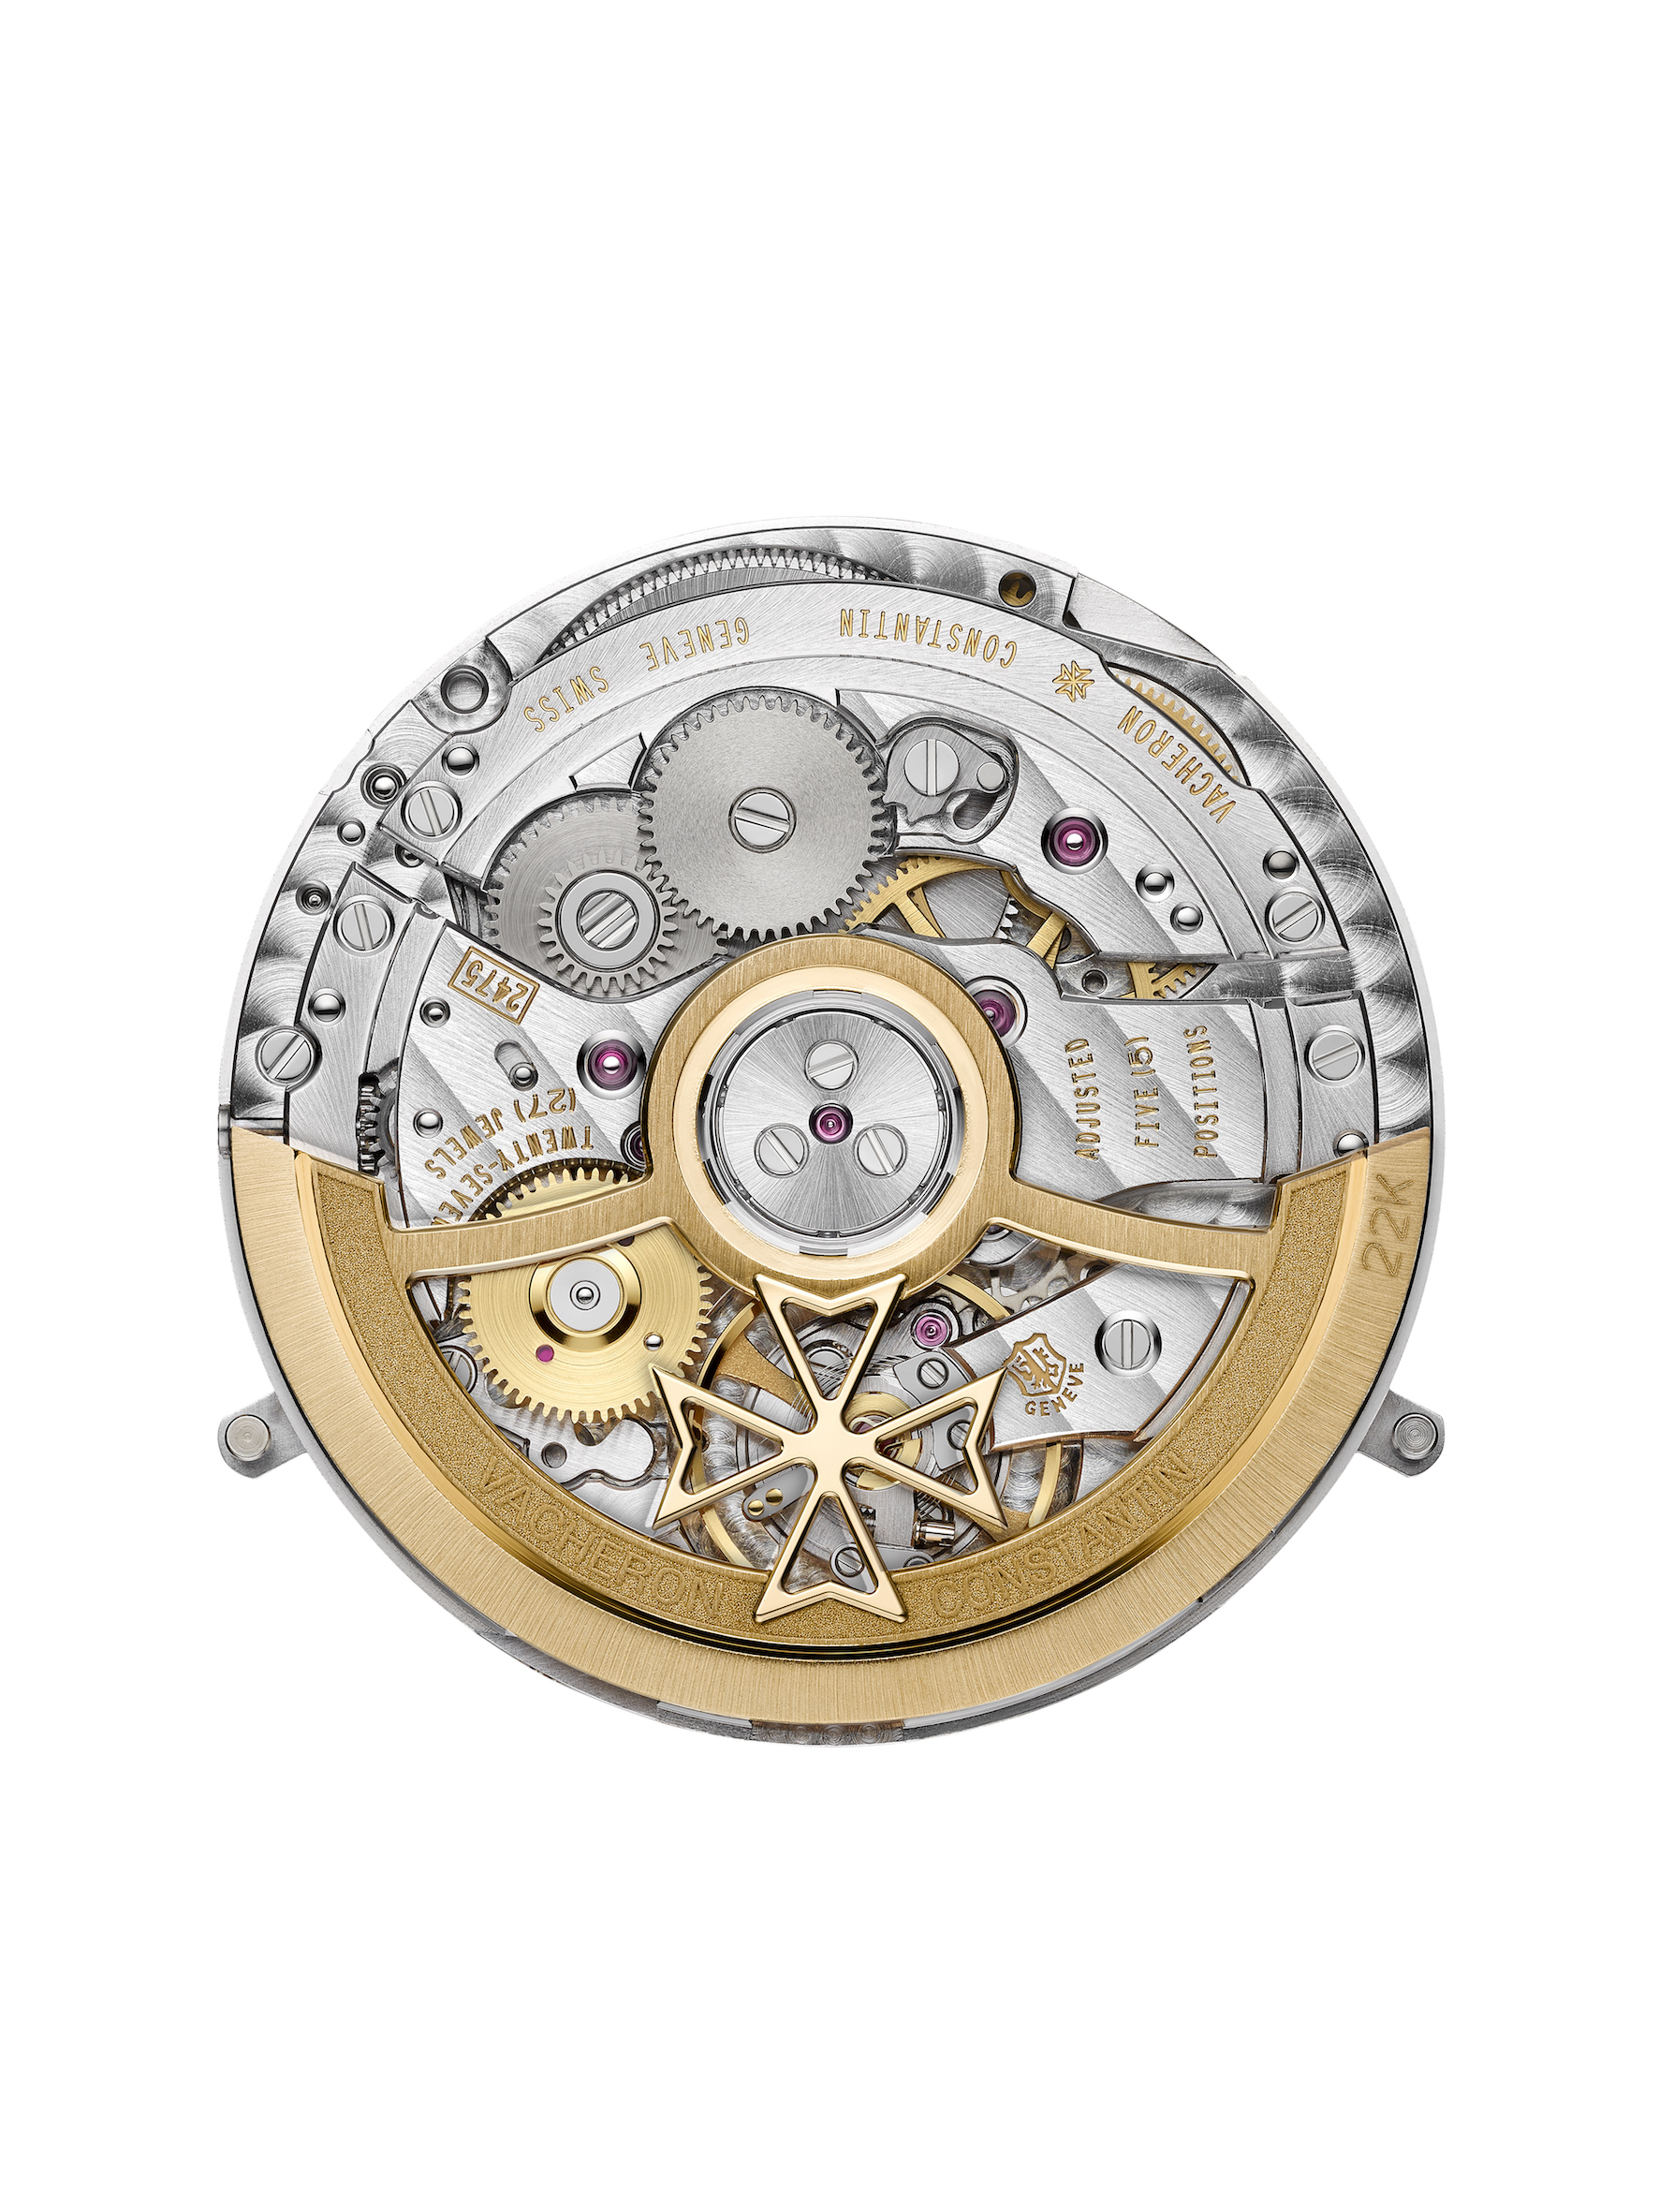 Vacheron Constantin 2475 SC/2. Developed and manufactured by Vacheron Constantin